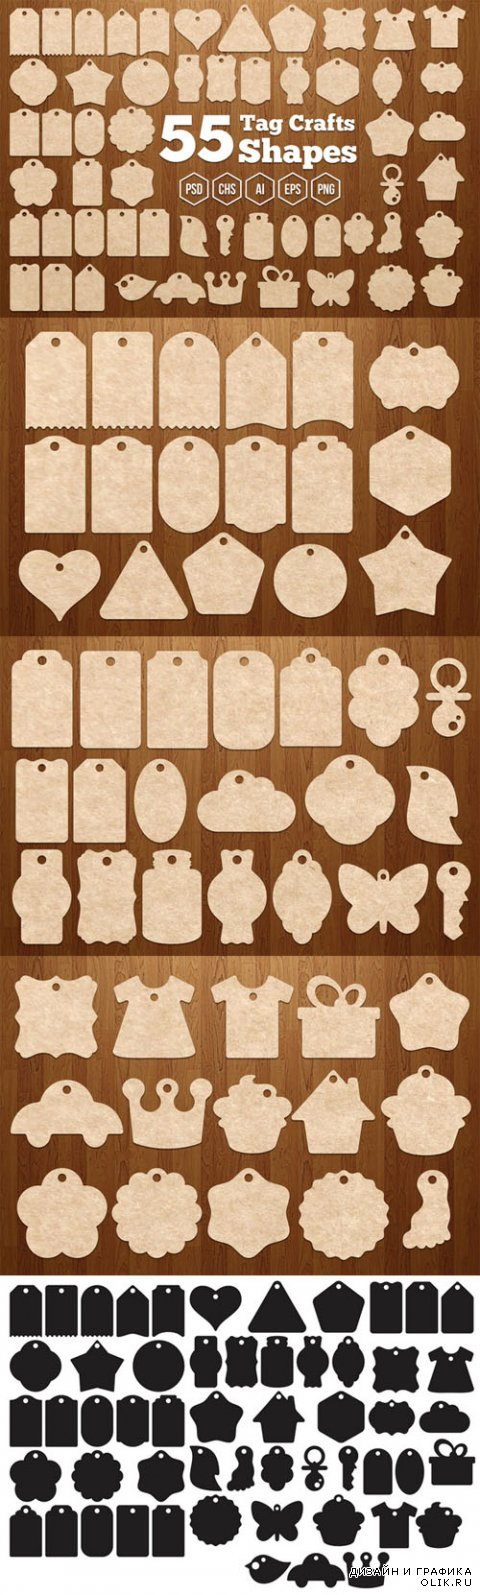 CrеаtivеМаrкеt - 55 Tag Crafts Shapes 337524